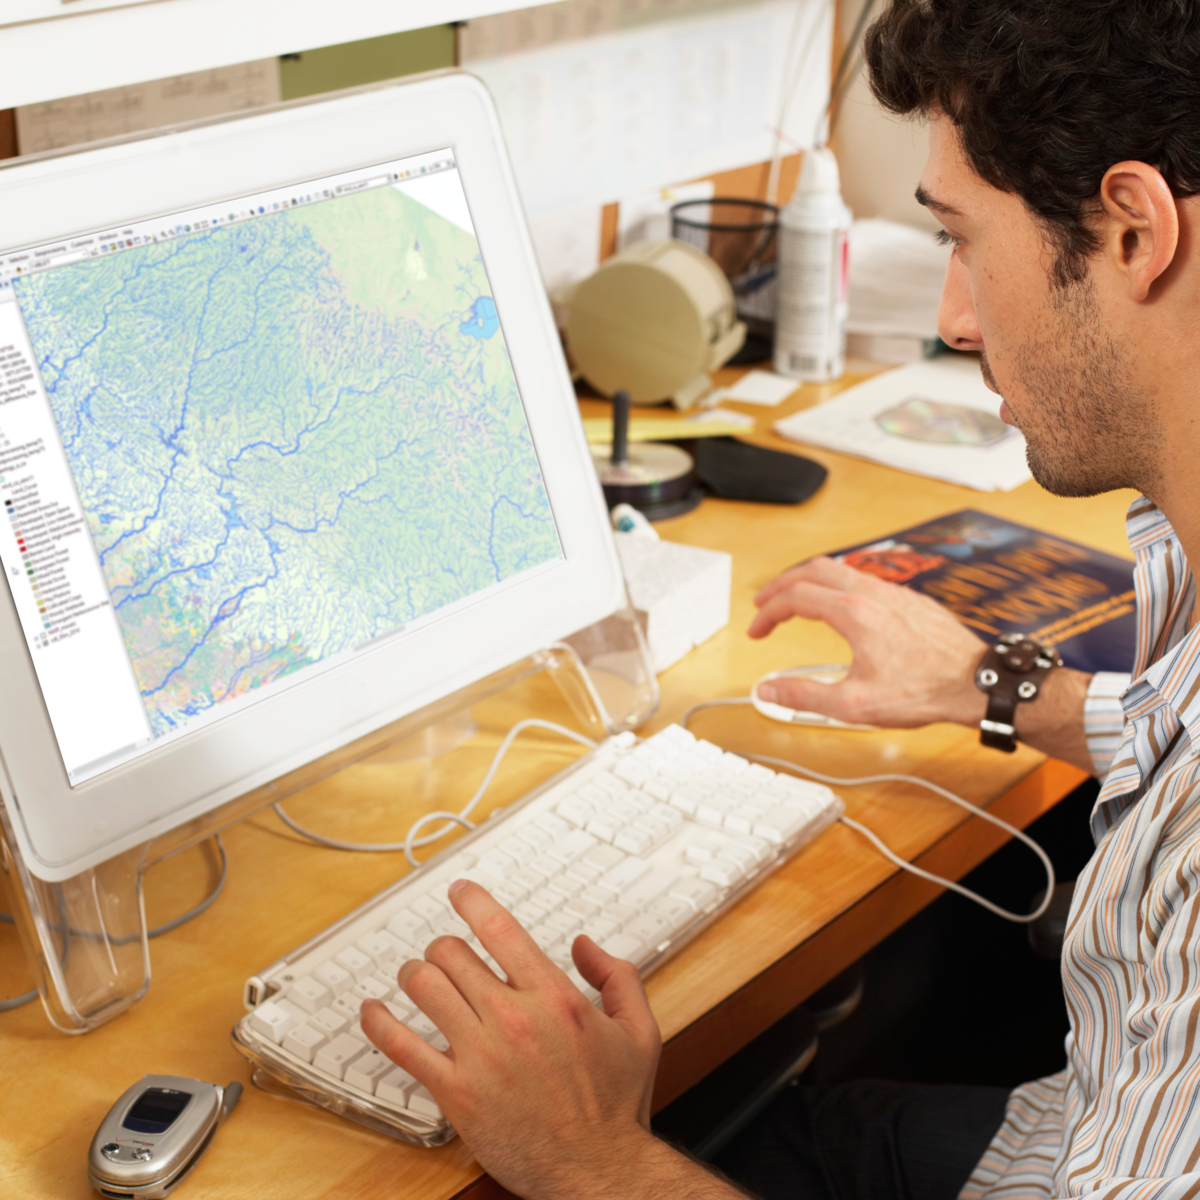 The 8 free Coursera online courses for GIS professionals